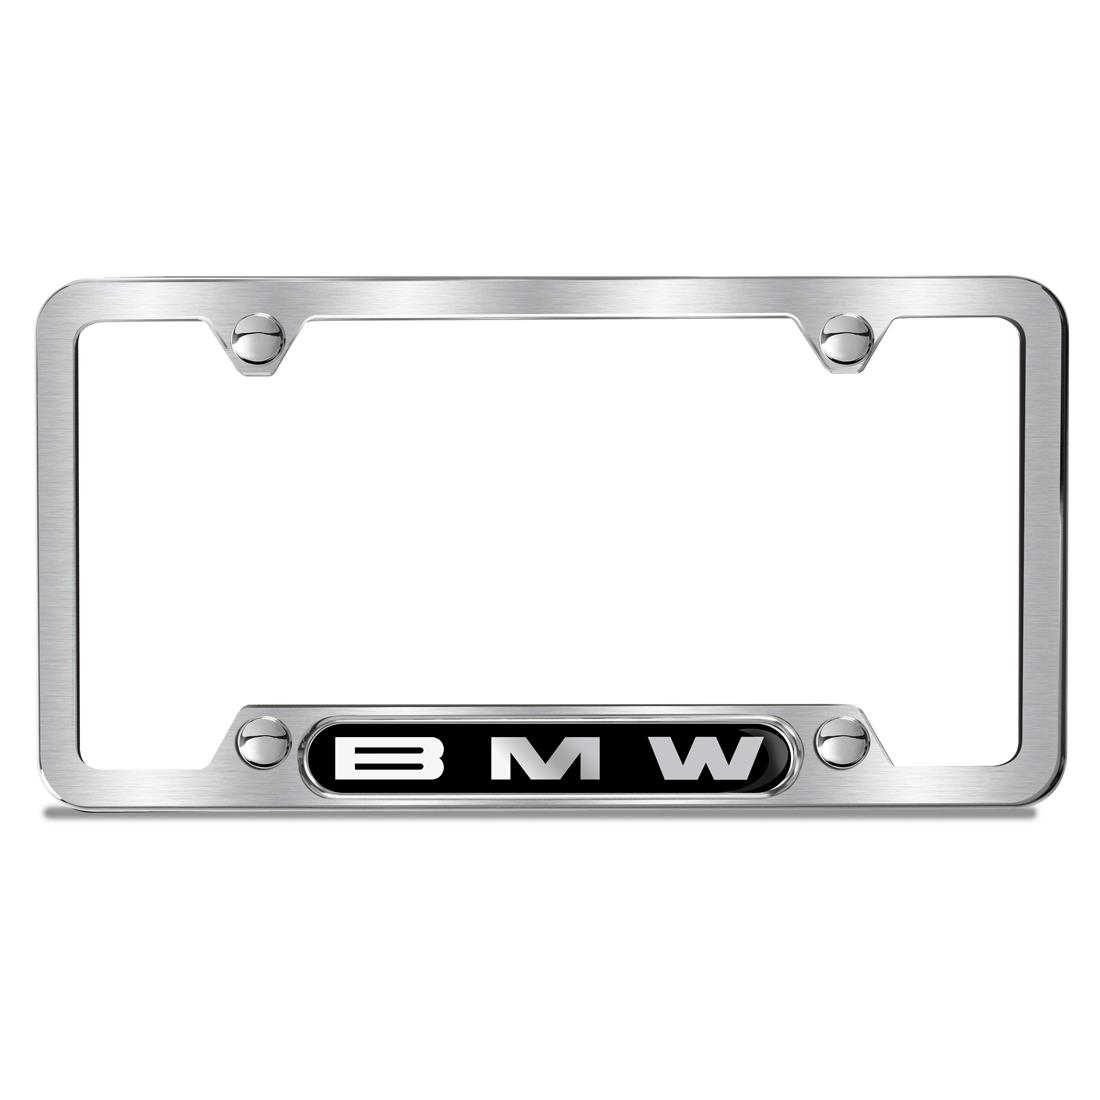 BMW Brushed BMW Lettering Plate Frame, Silver